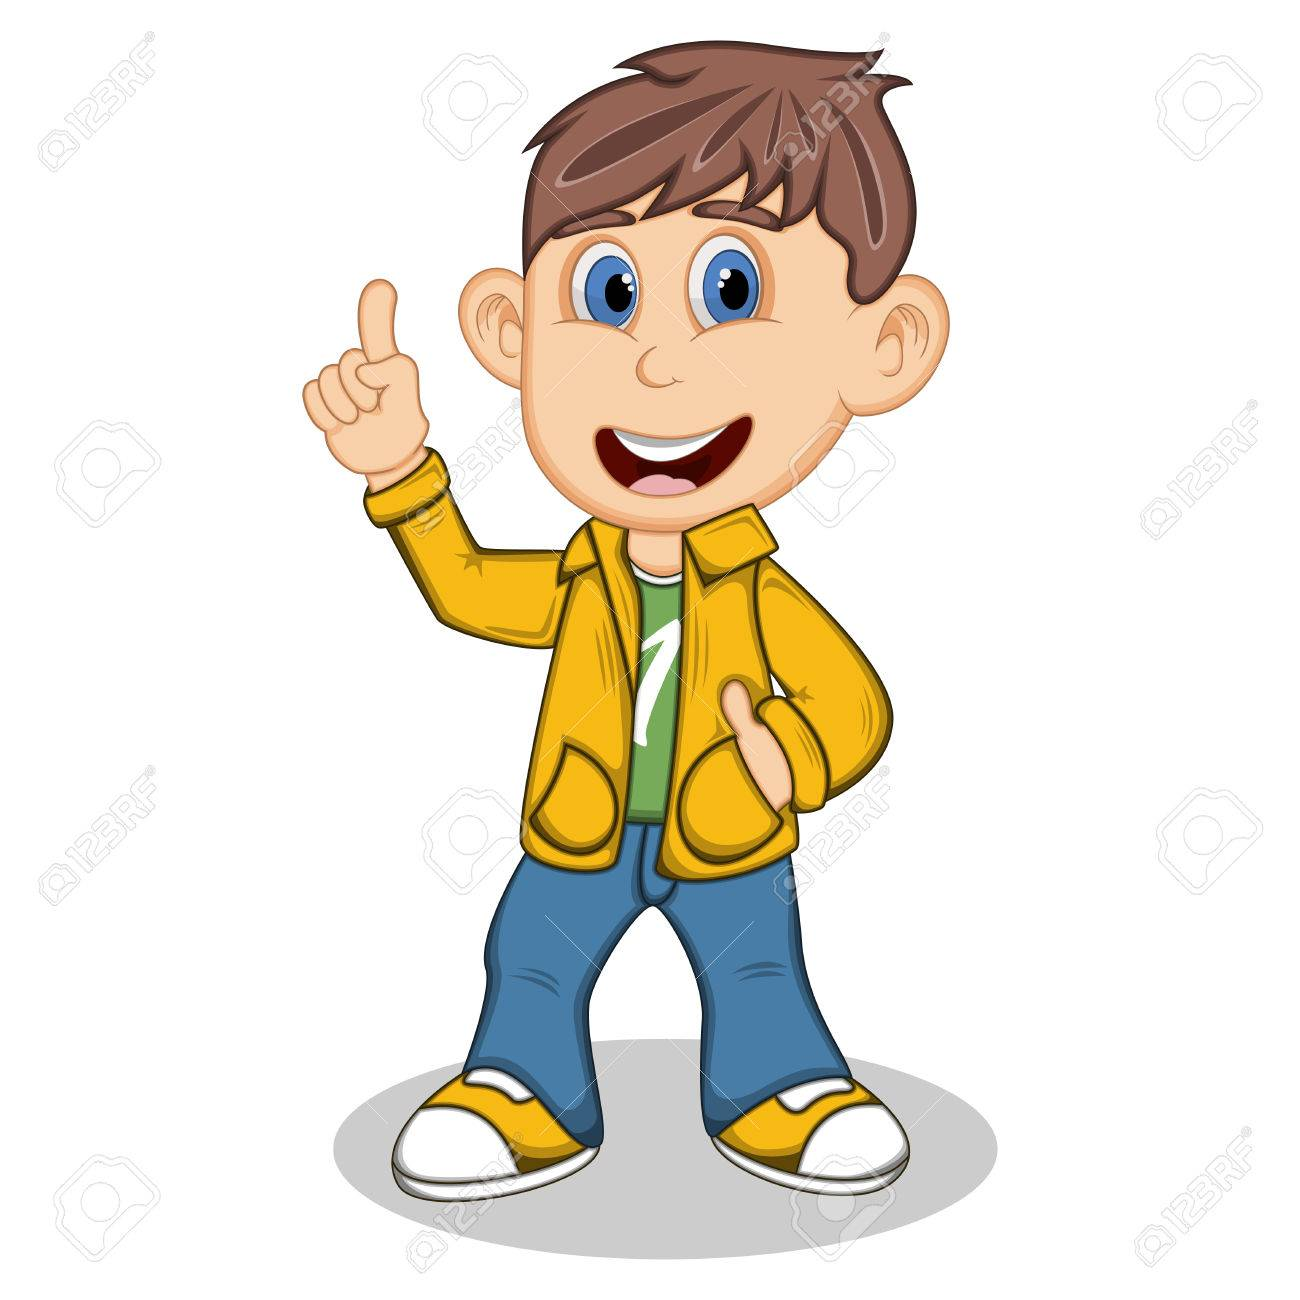 Boy With Yellow Jacket And Blue Trousers Point His Finger Cartoon